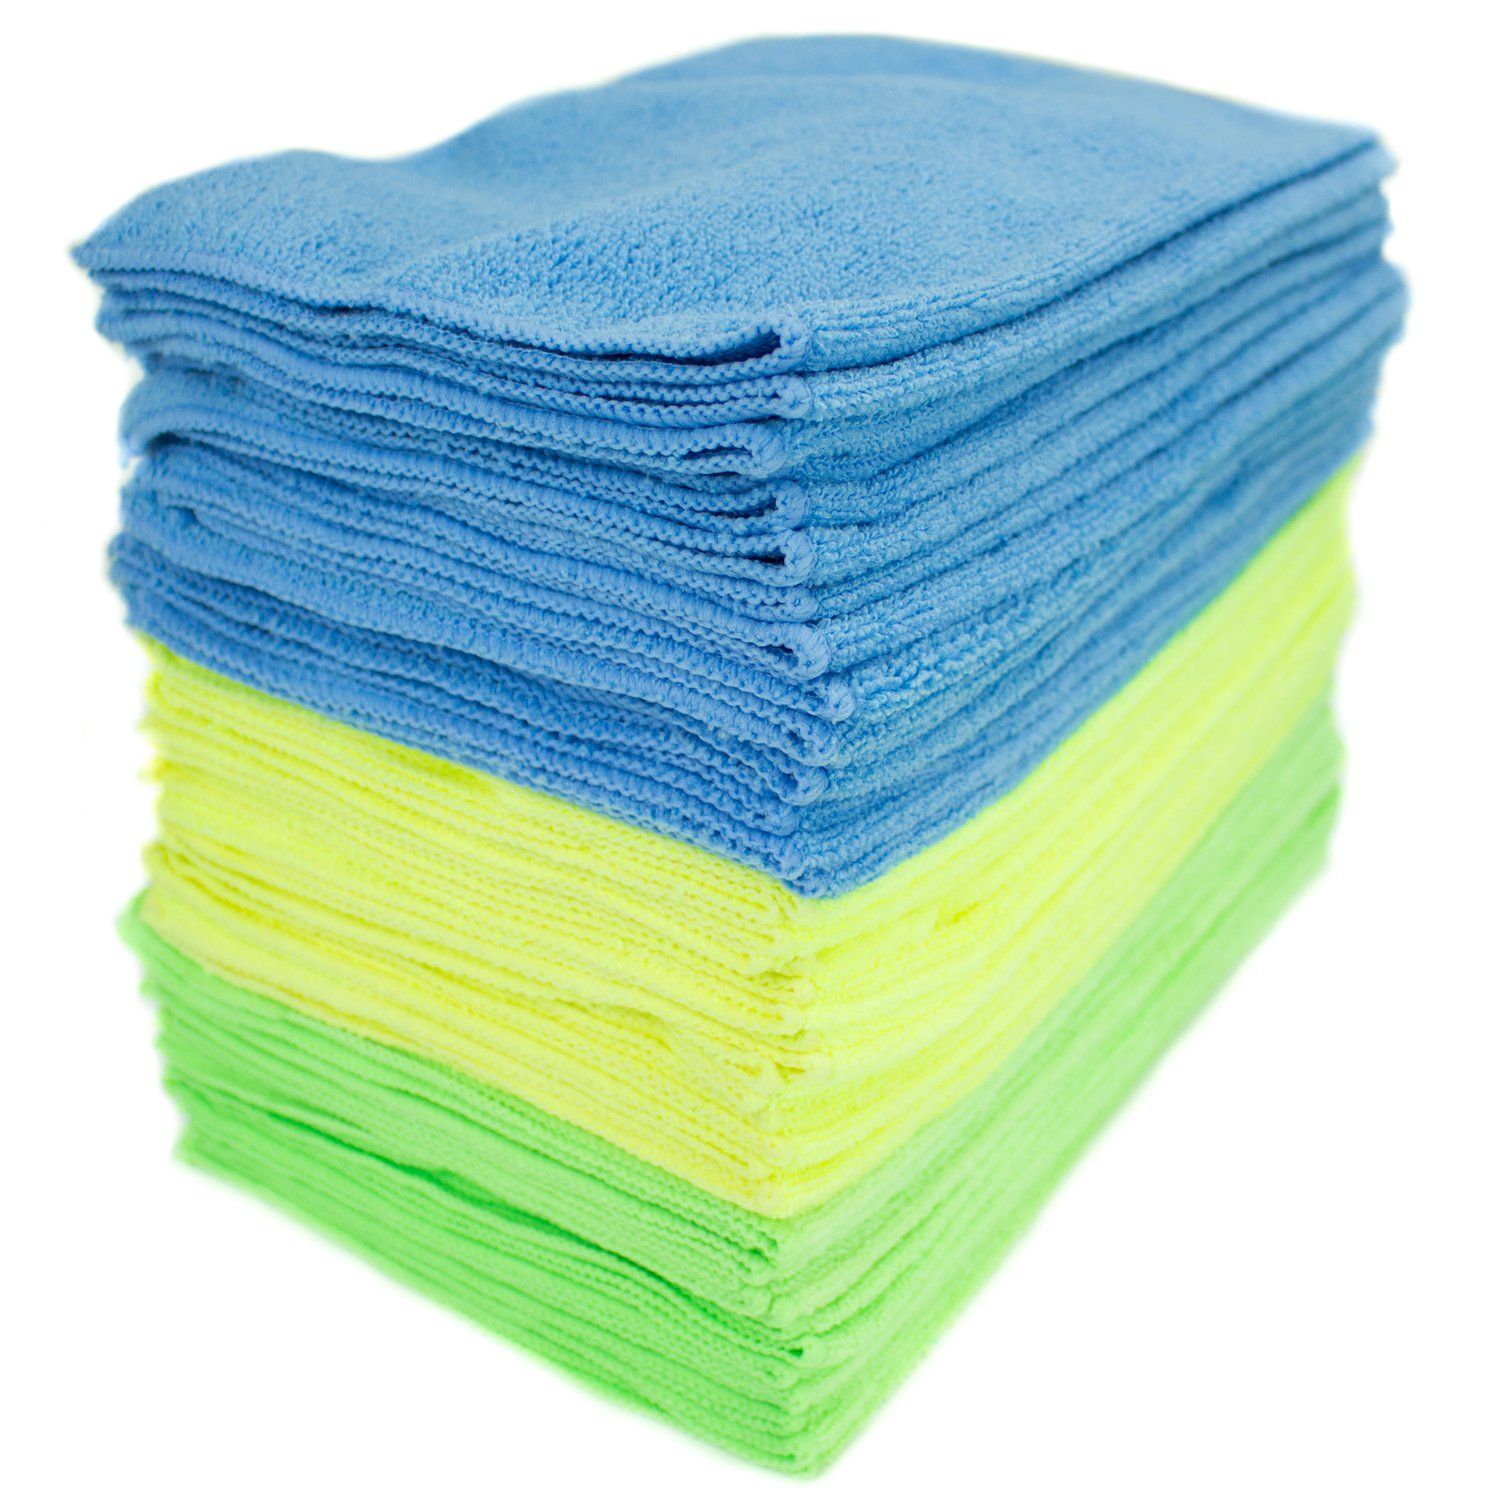 Zwipes Microfiber Cleaning Cloths, Pack of 48 948